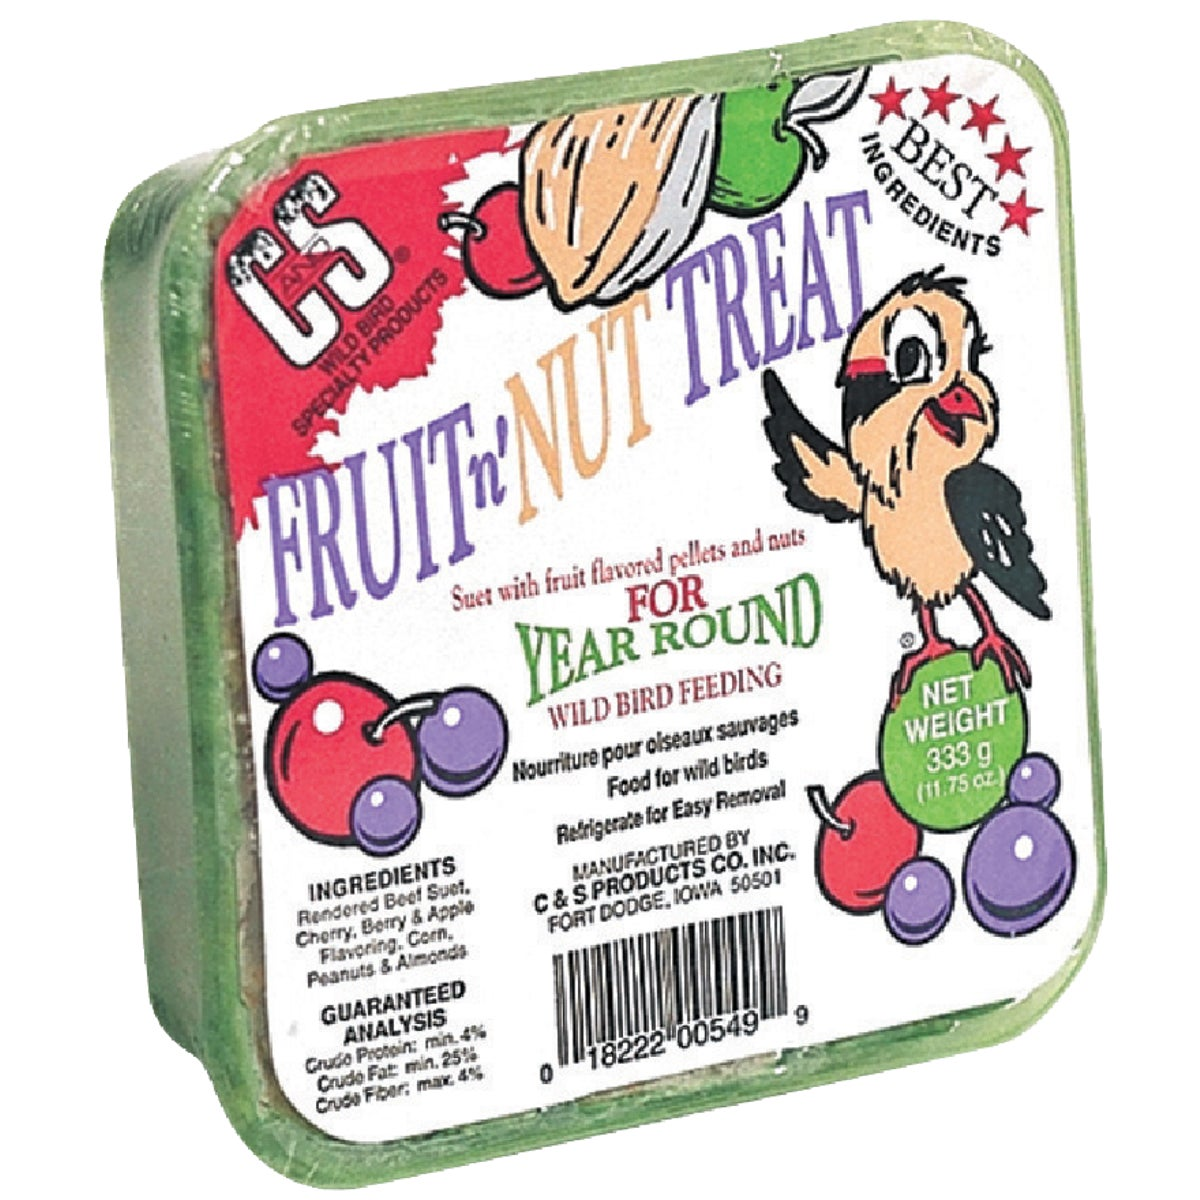 FRUIT AND NUT SUET - 12549 by C & S Products Inc